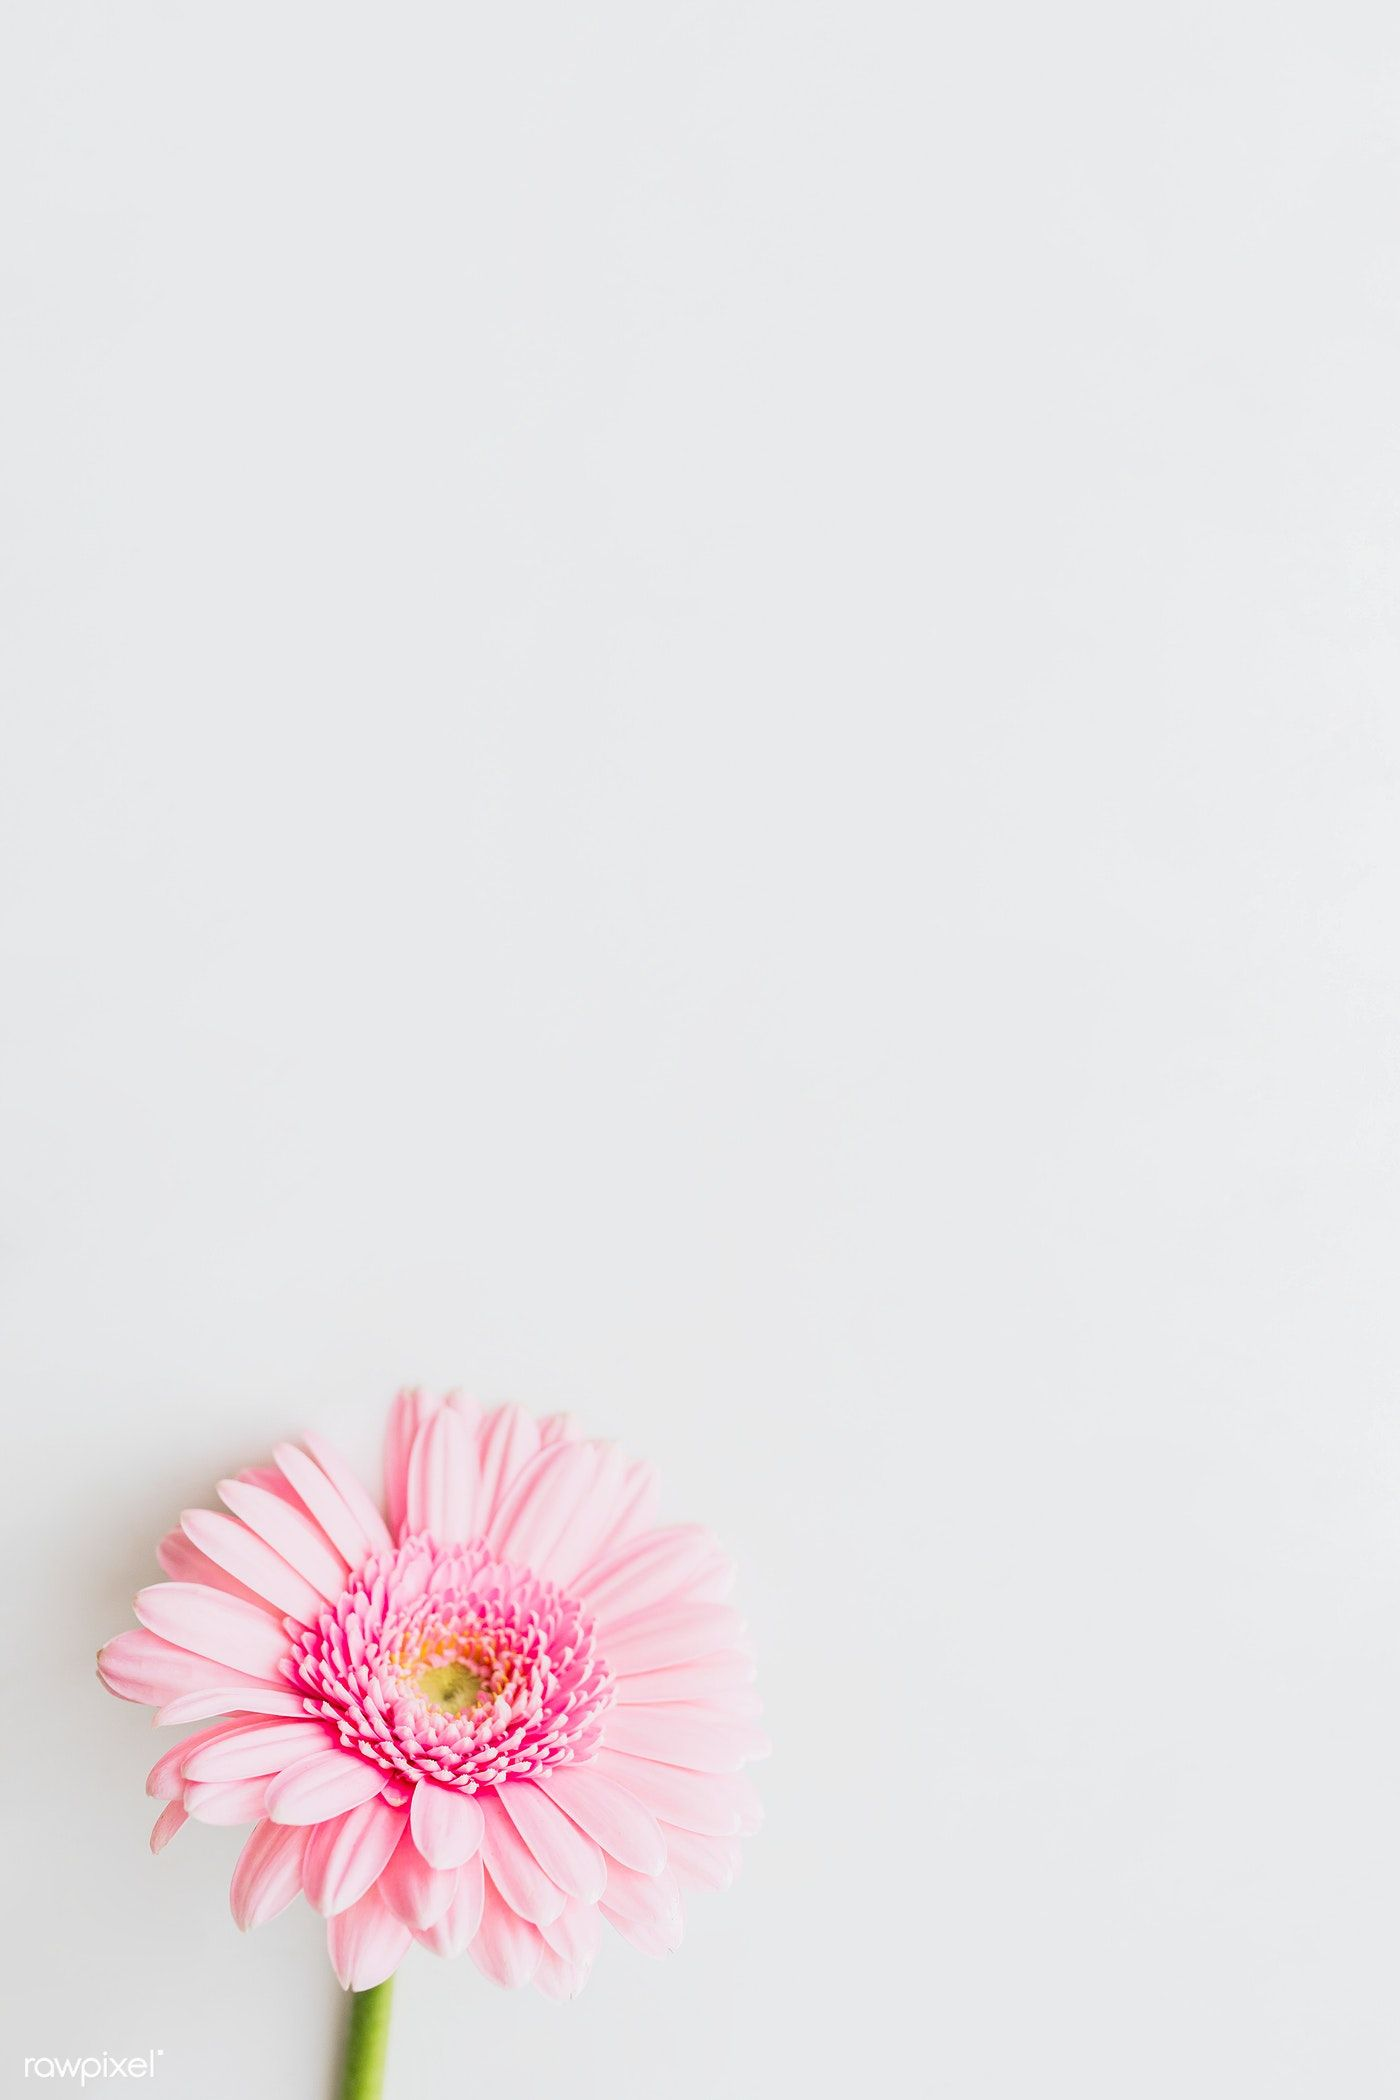 Single Light Pink Gerbera Daisy Flower On Gray Background Free Image By Rawpixel Com Karolina Kaboompics In 2020 Pink Gerbera Gerbera Flower Daisy Background